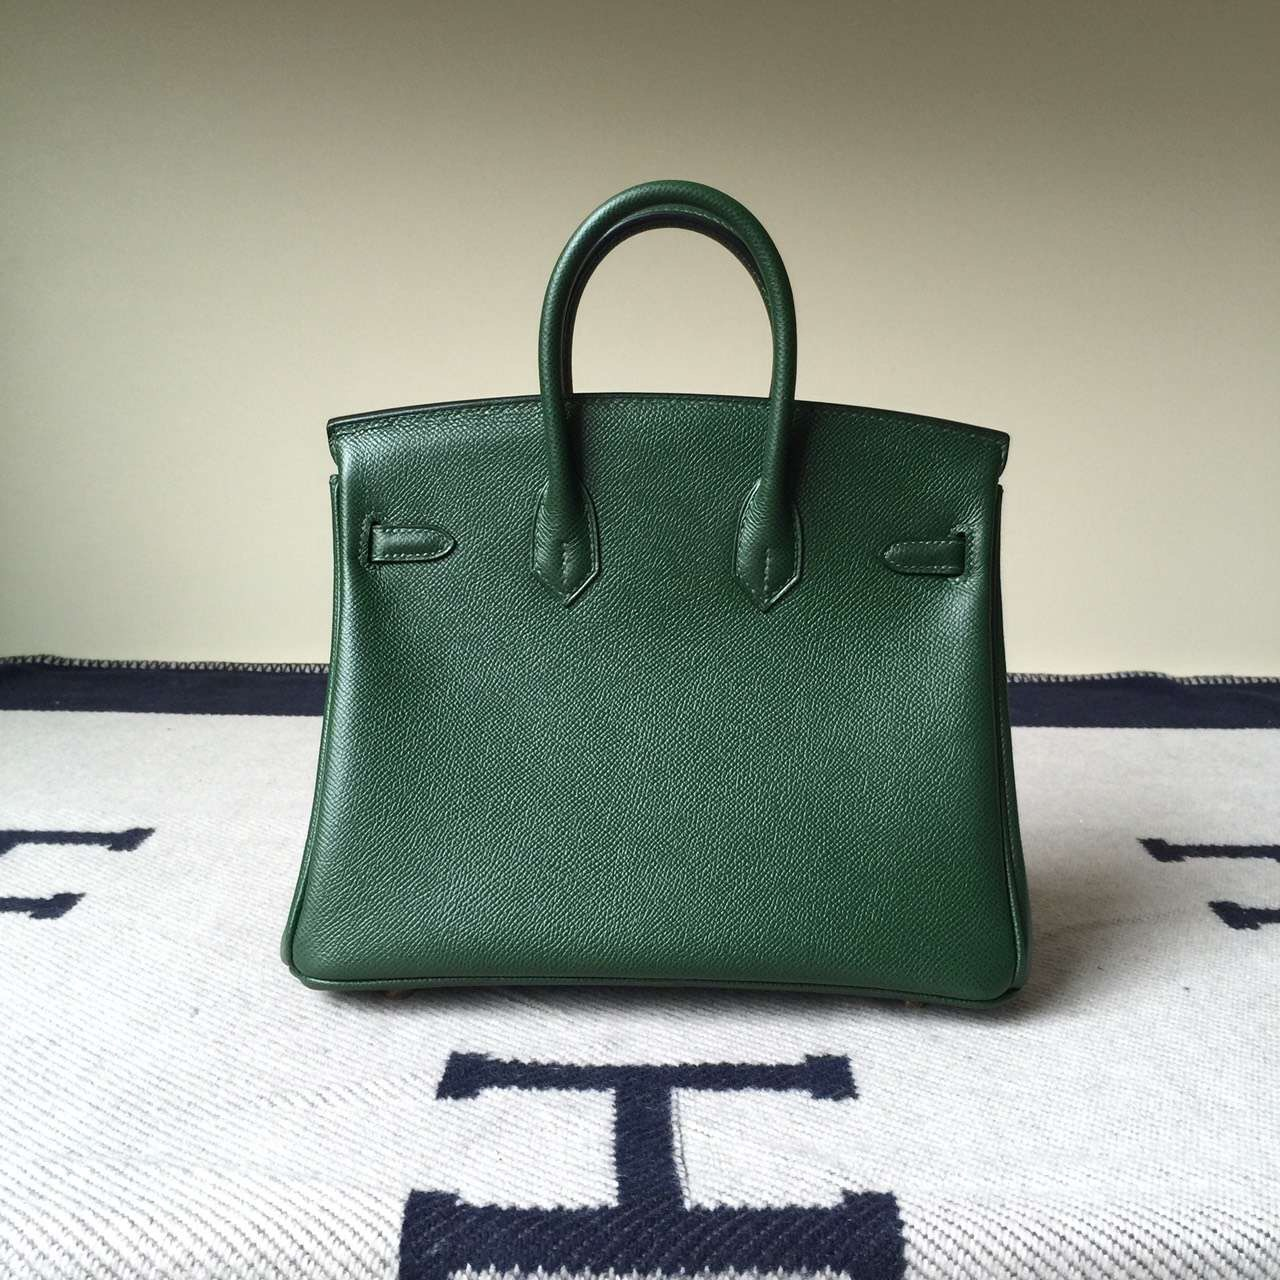 Discount Hermes Birkin Bag 25cm in 2Q English Green Epsom Calf Leather